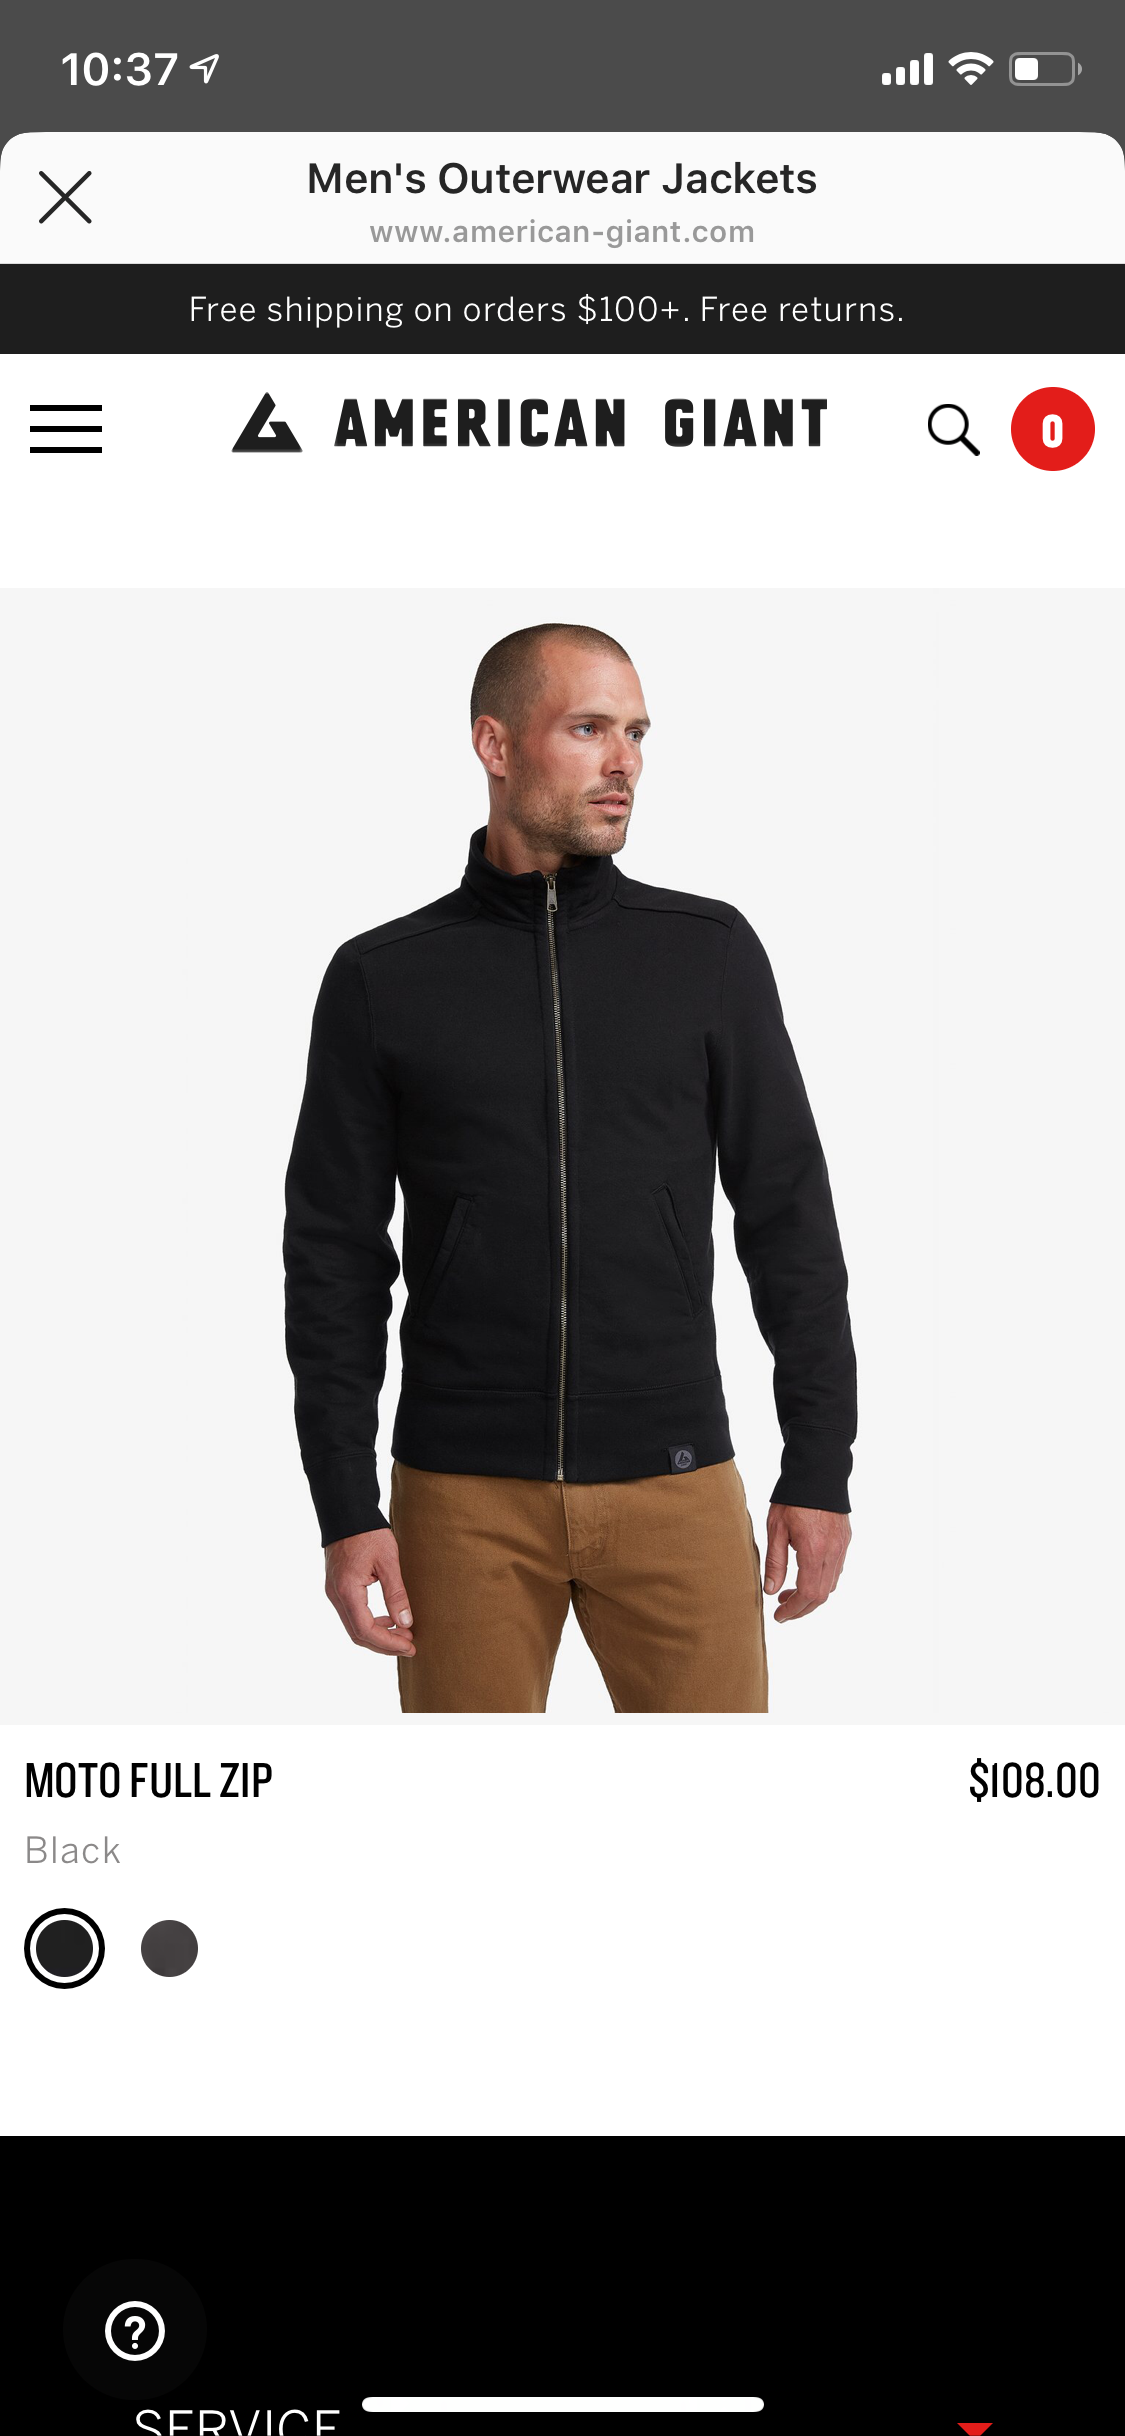 Pin By Scott Hartwig On Style Mens Outerwear Jacket Outerwear Jackets Mens Outerwear [ 2436 x 1125 Pixel ]